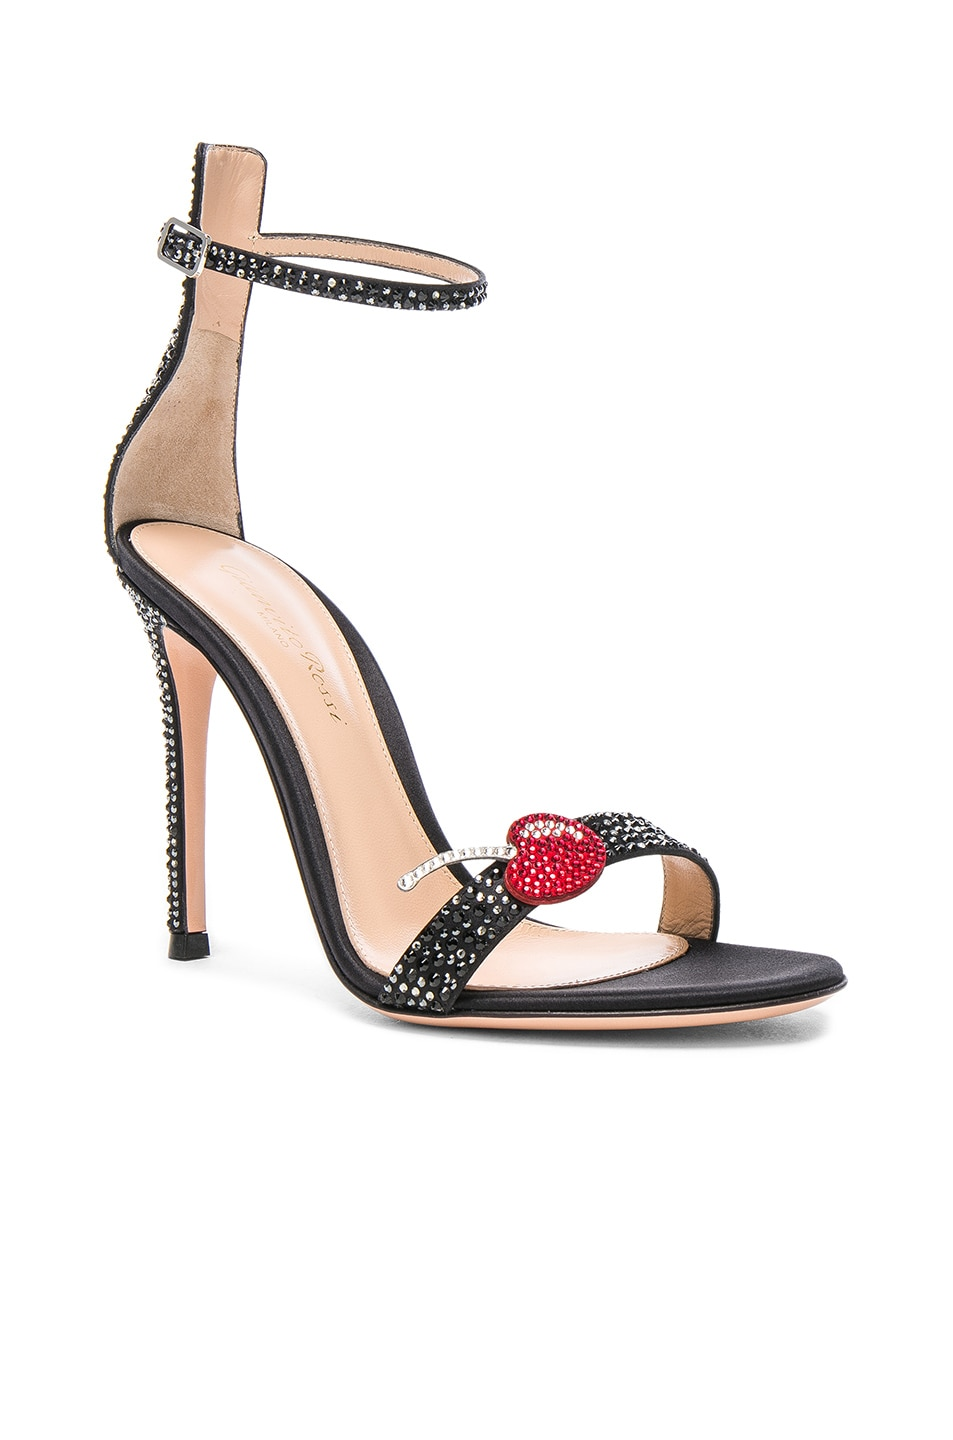 Image 2 of Gianvito Rossi Crystal Embellished Ankle Strap Sandals in Black